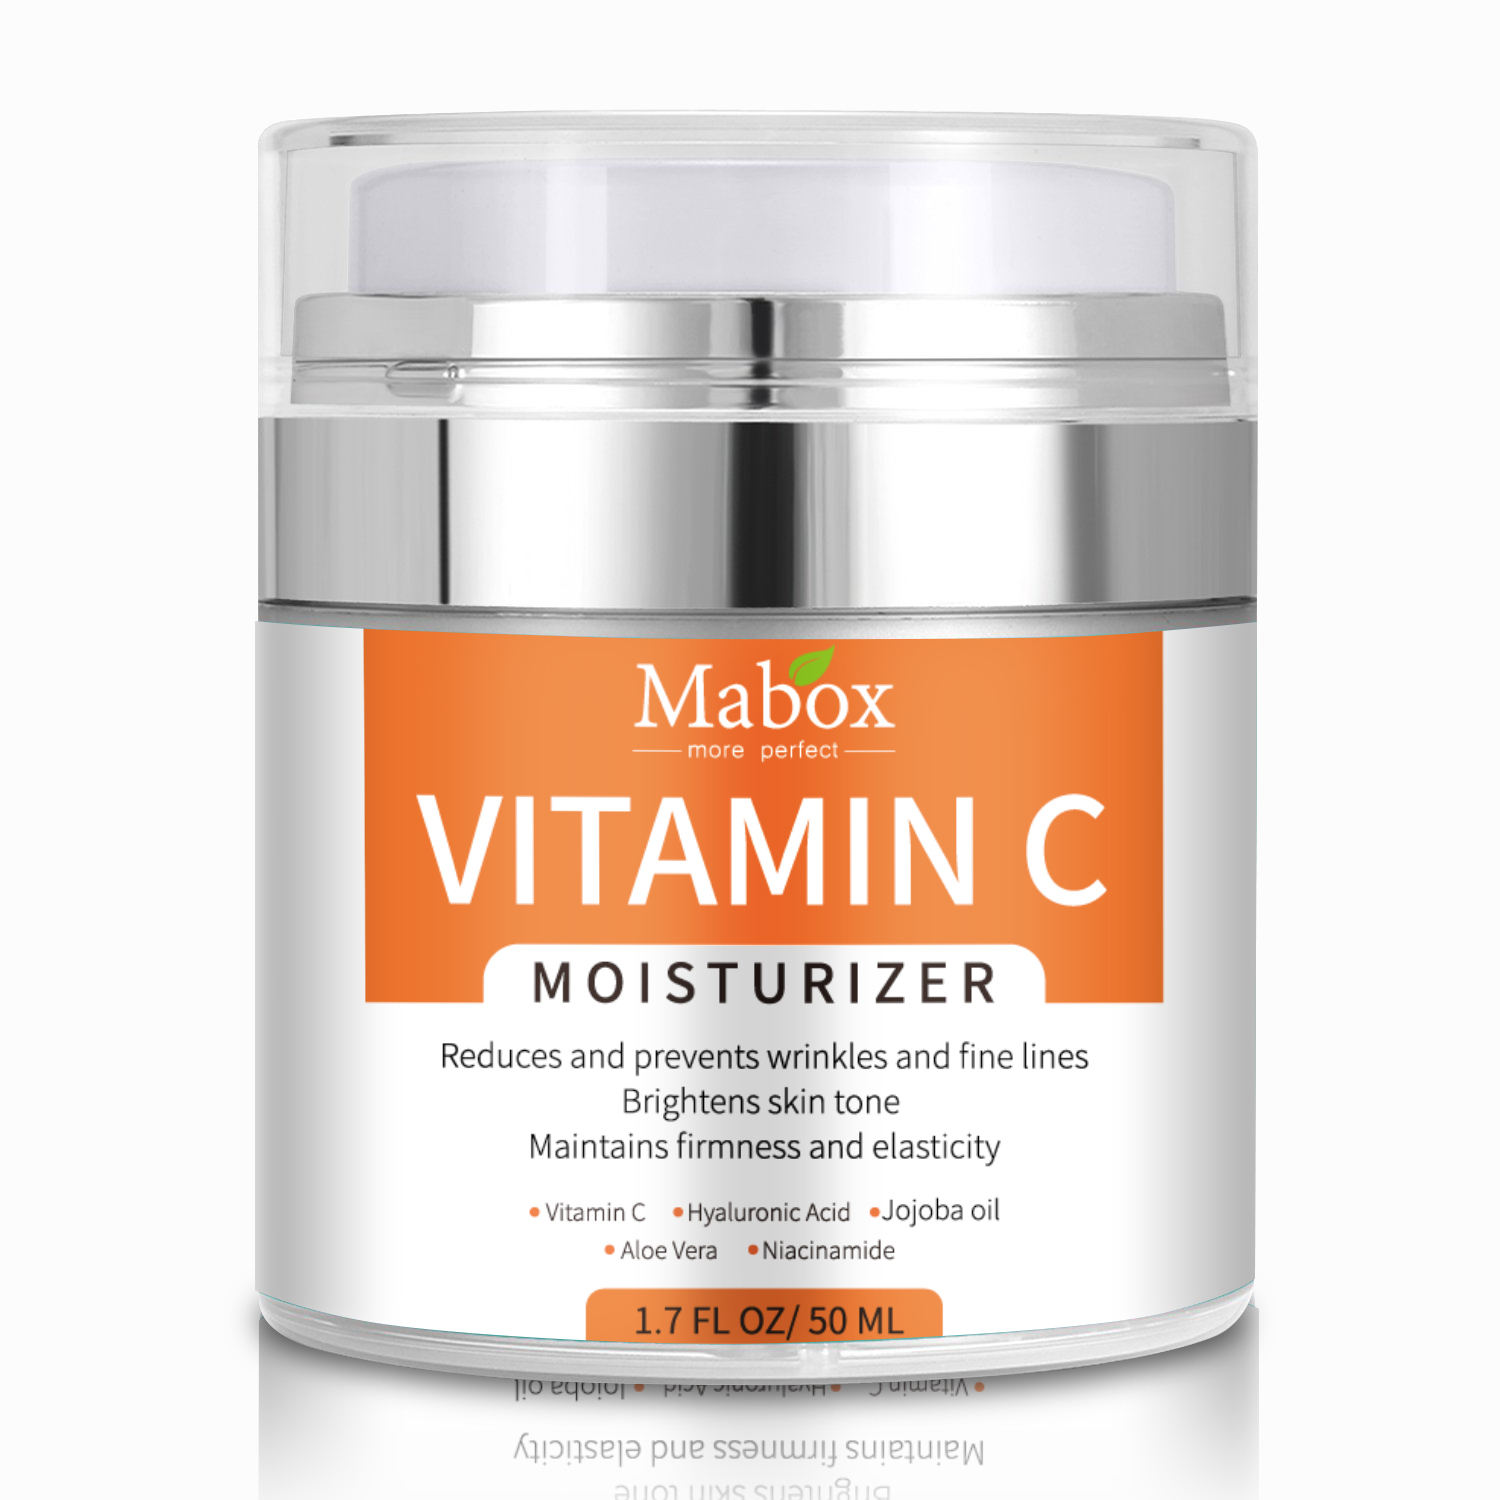 Mabox Private Label Face Skin Whitening Glowing Moisturizer Vitamin C Cream